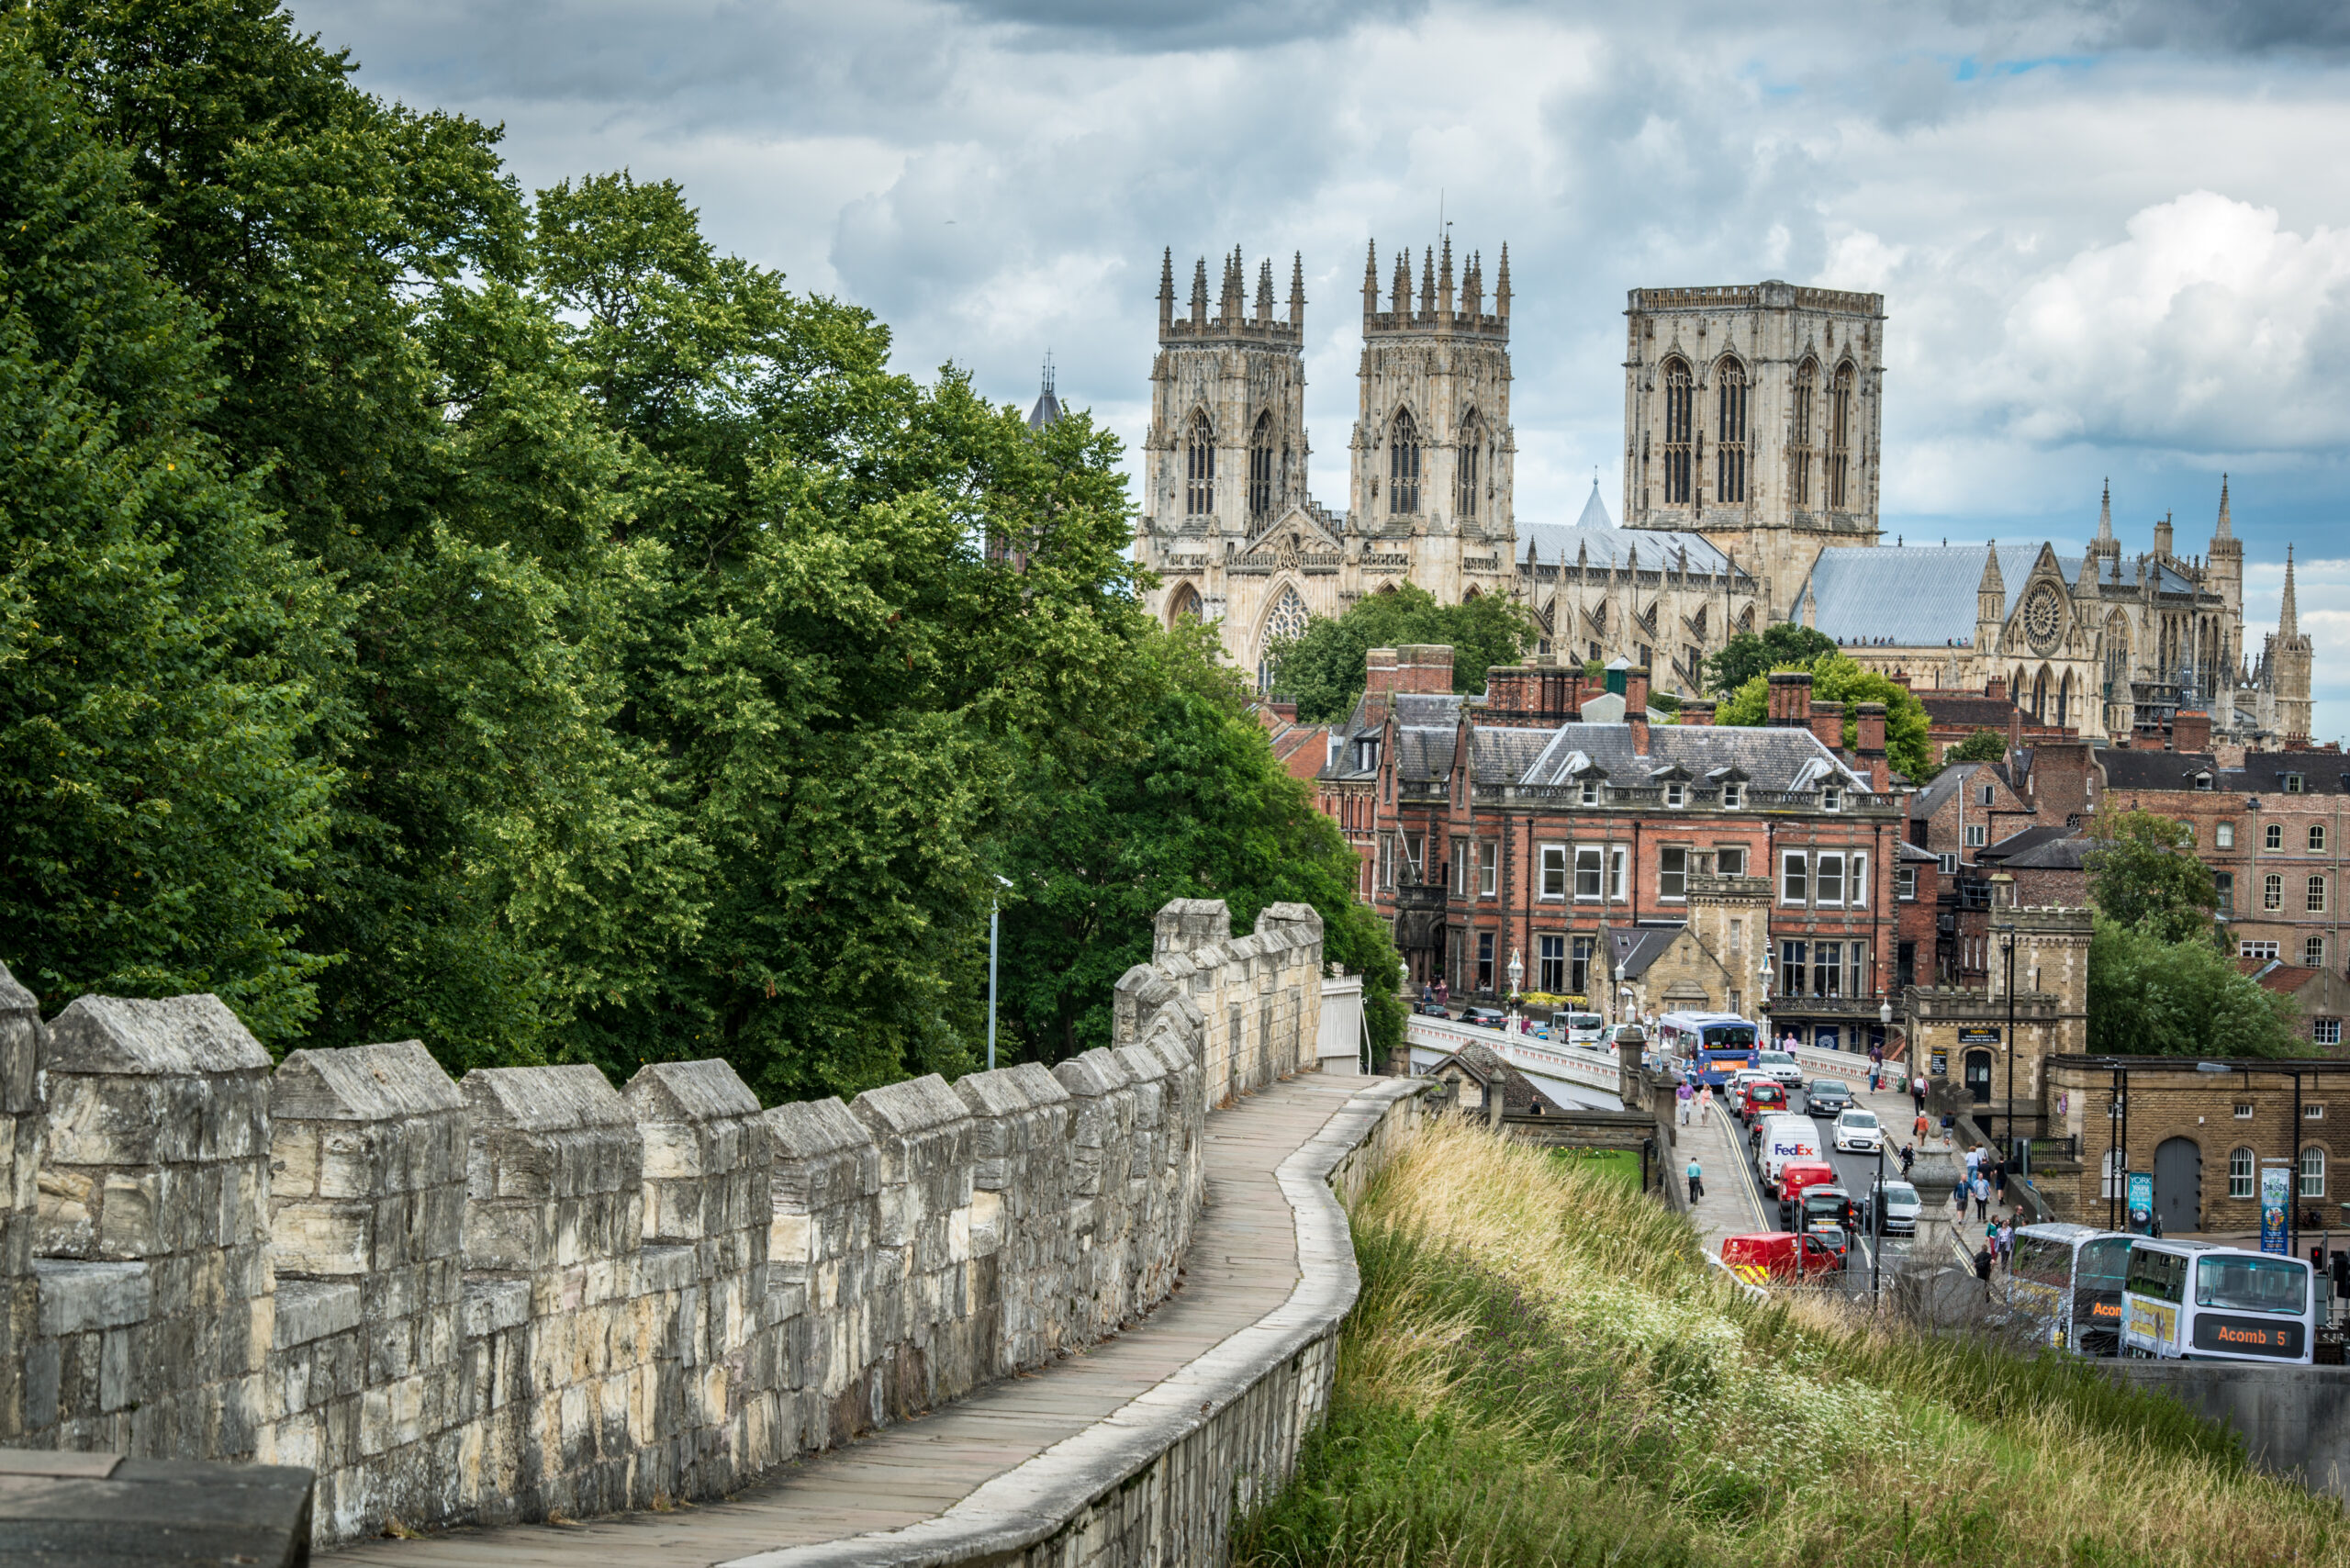 A view of York Minster, with a city wall and a street packed with cars, vans and buses in the foreground.